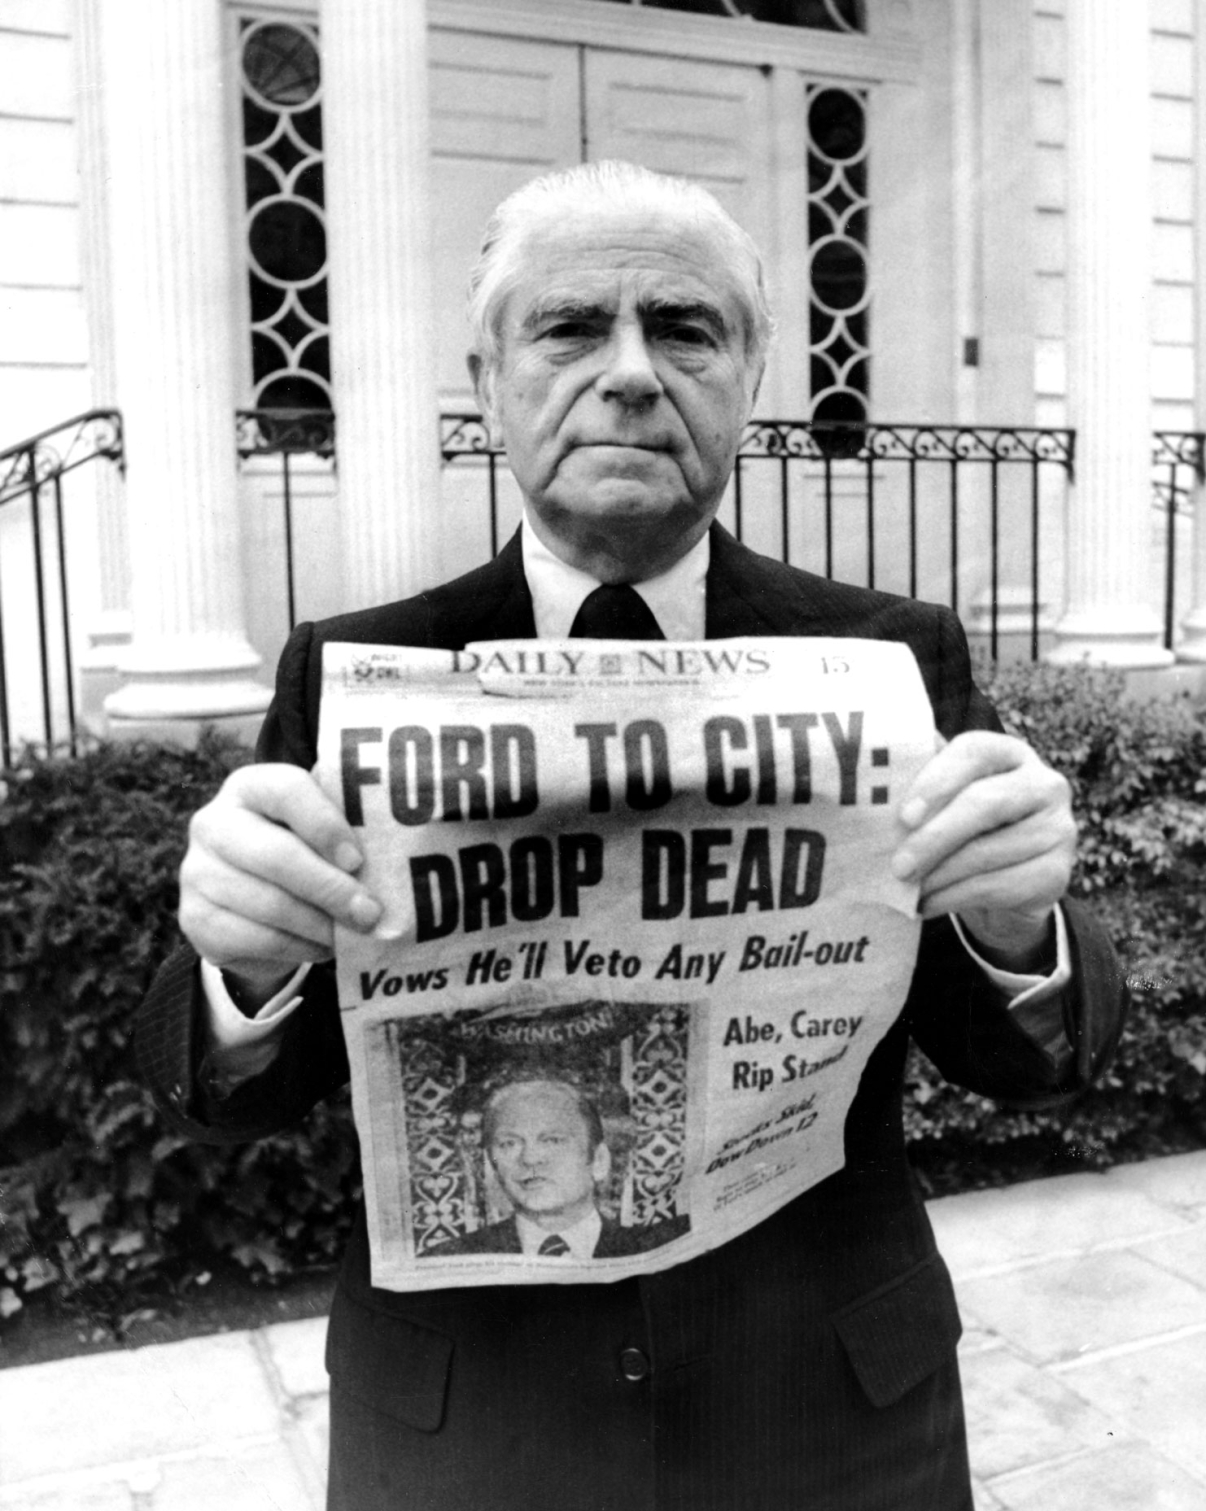 """Ford to City: Drop Dead"" was the famous headline that ran on October 30th, 1975 in the New York Daily News, as shown here held by Abraham Beame, Mayor of New York City from 1974-1977. Image: Getty Images."